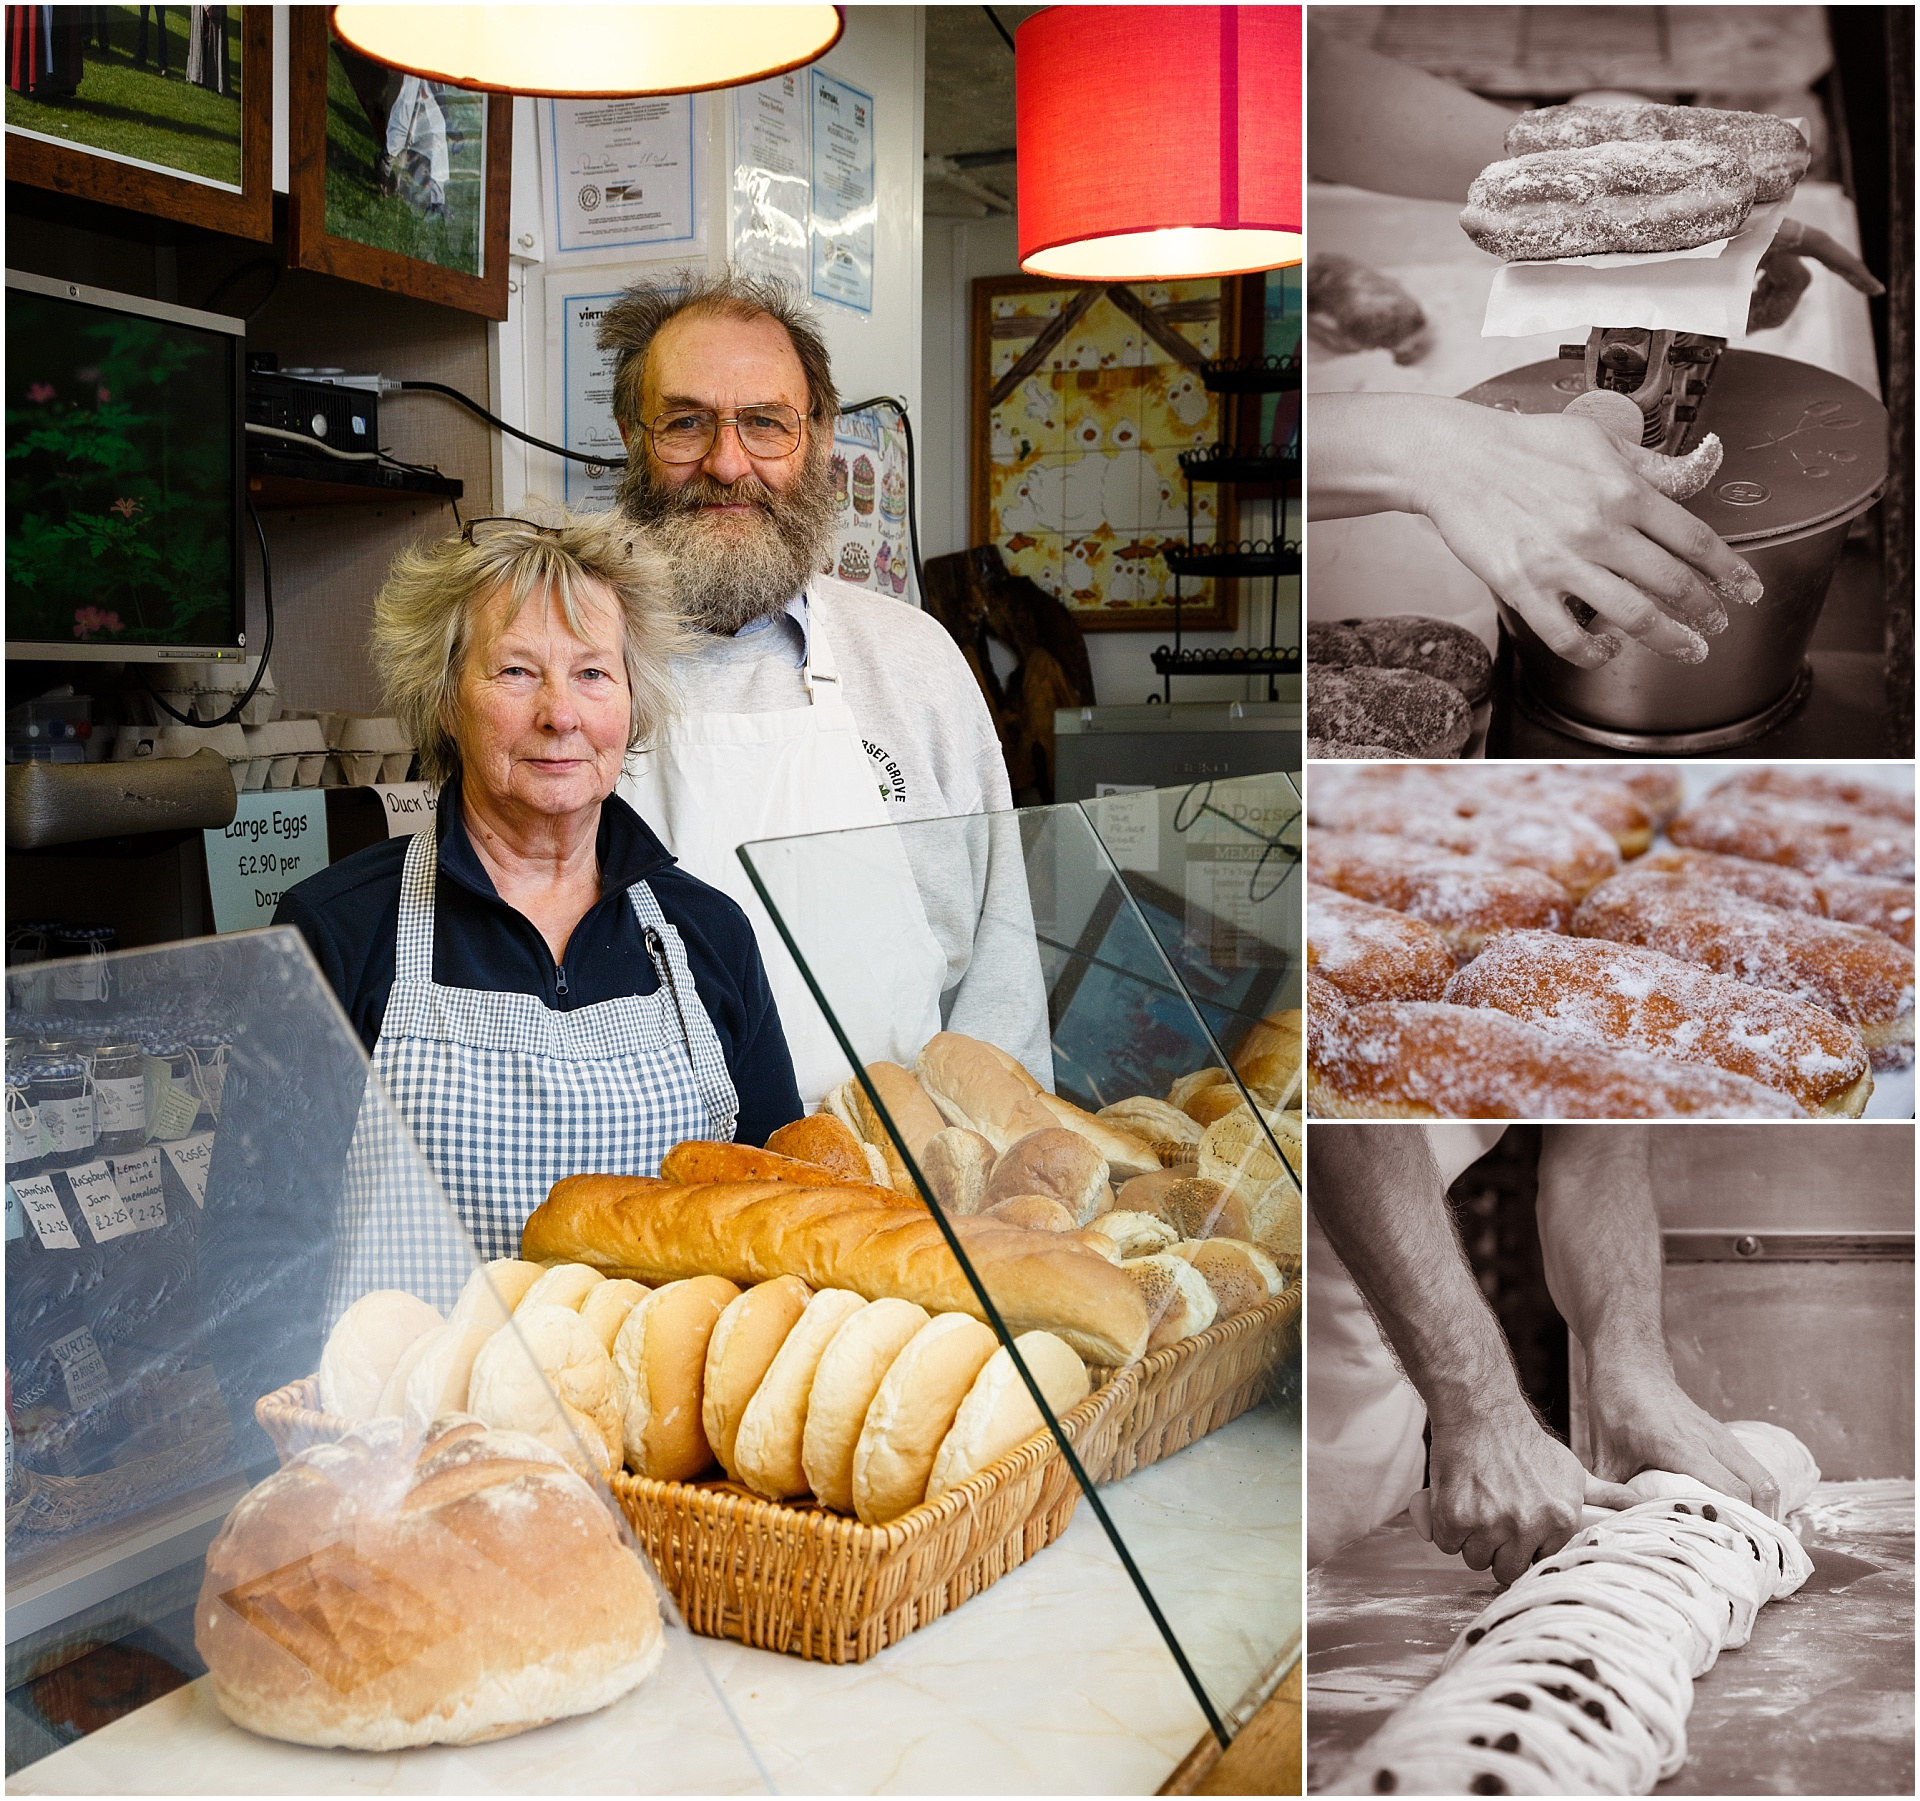 Images from Sgt Bun bakery in Weymouth